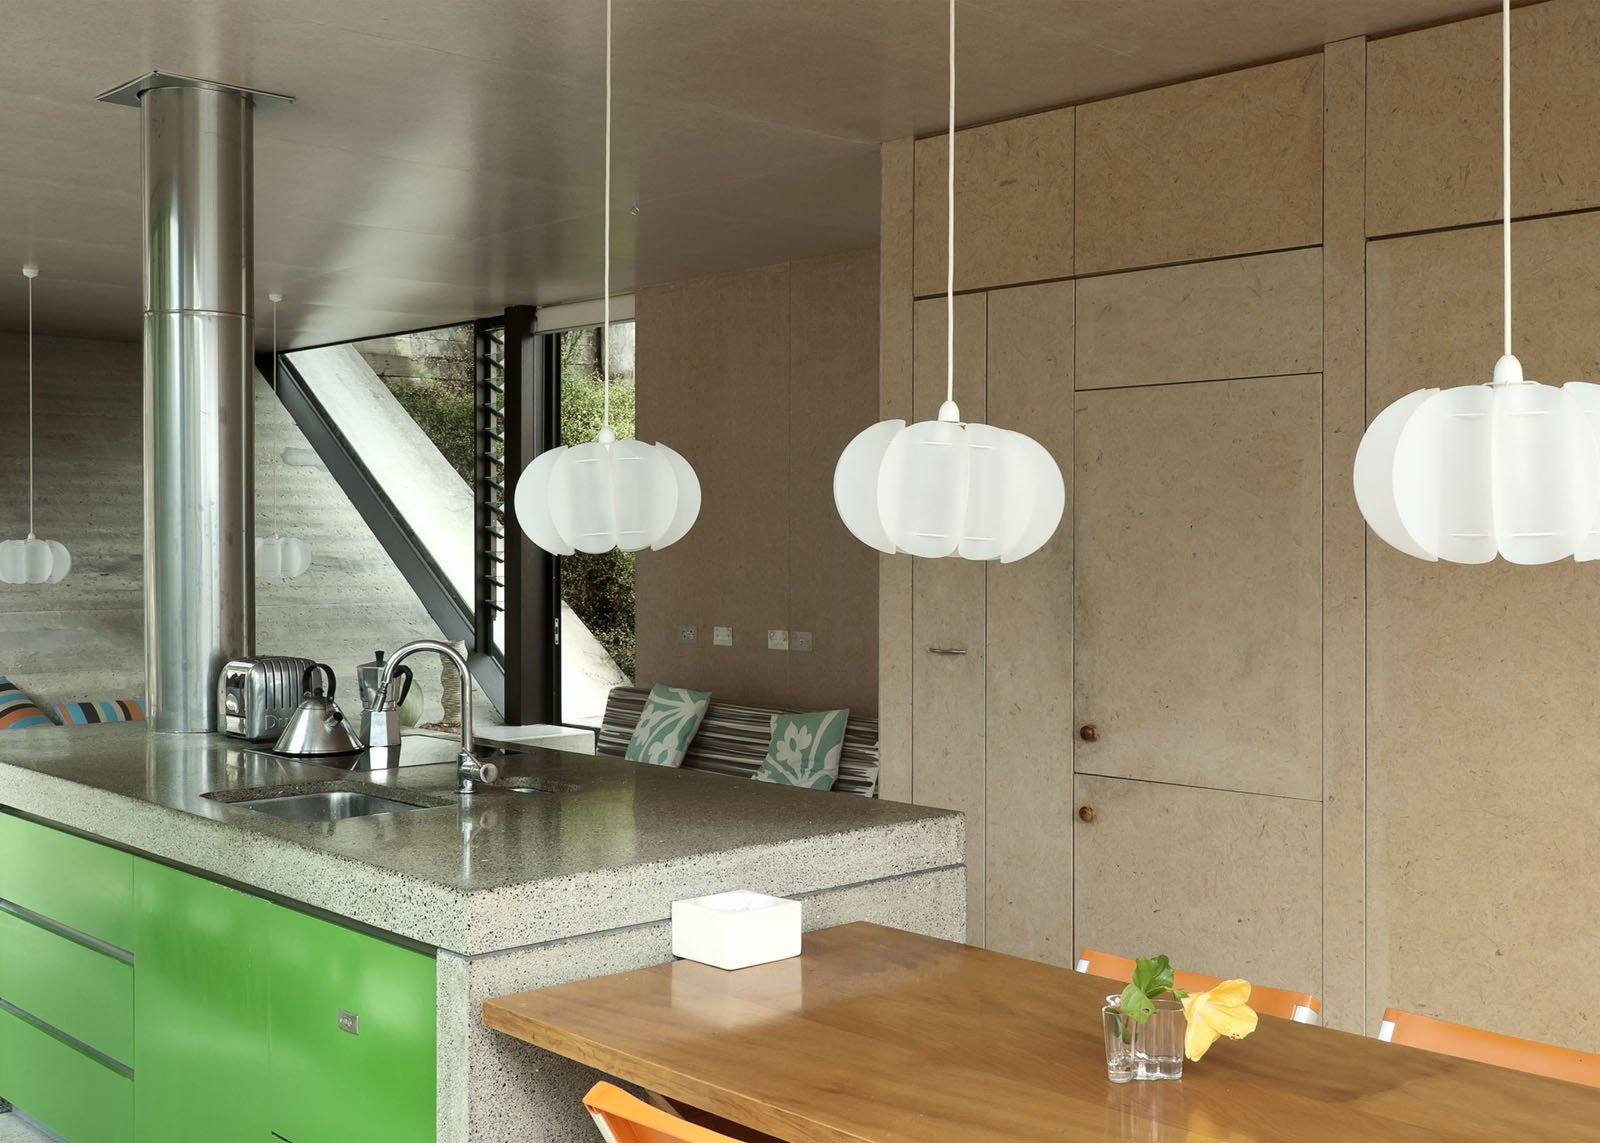 The hanging Iko Iko pendants in the kitchen add a vertical touch to a space and help frame the views outside.  How to Design with Green by Diana Budds from Make Your Parents Happy by Building Them a House